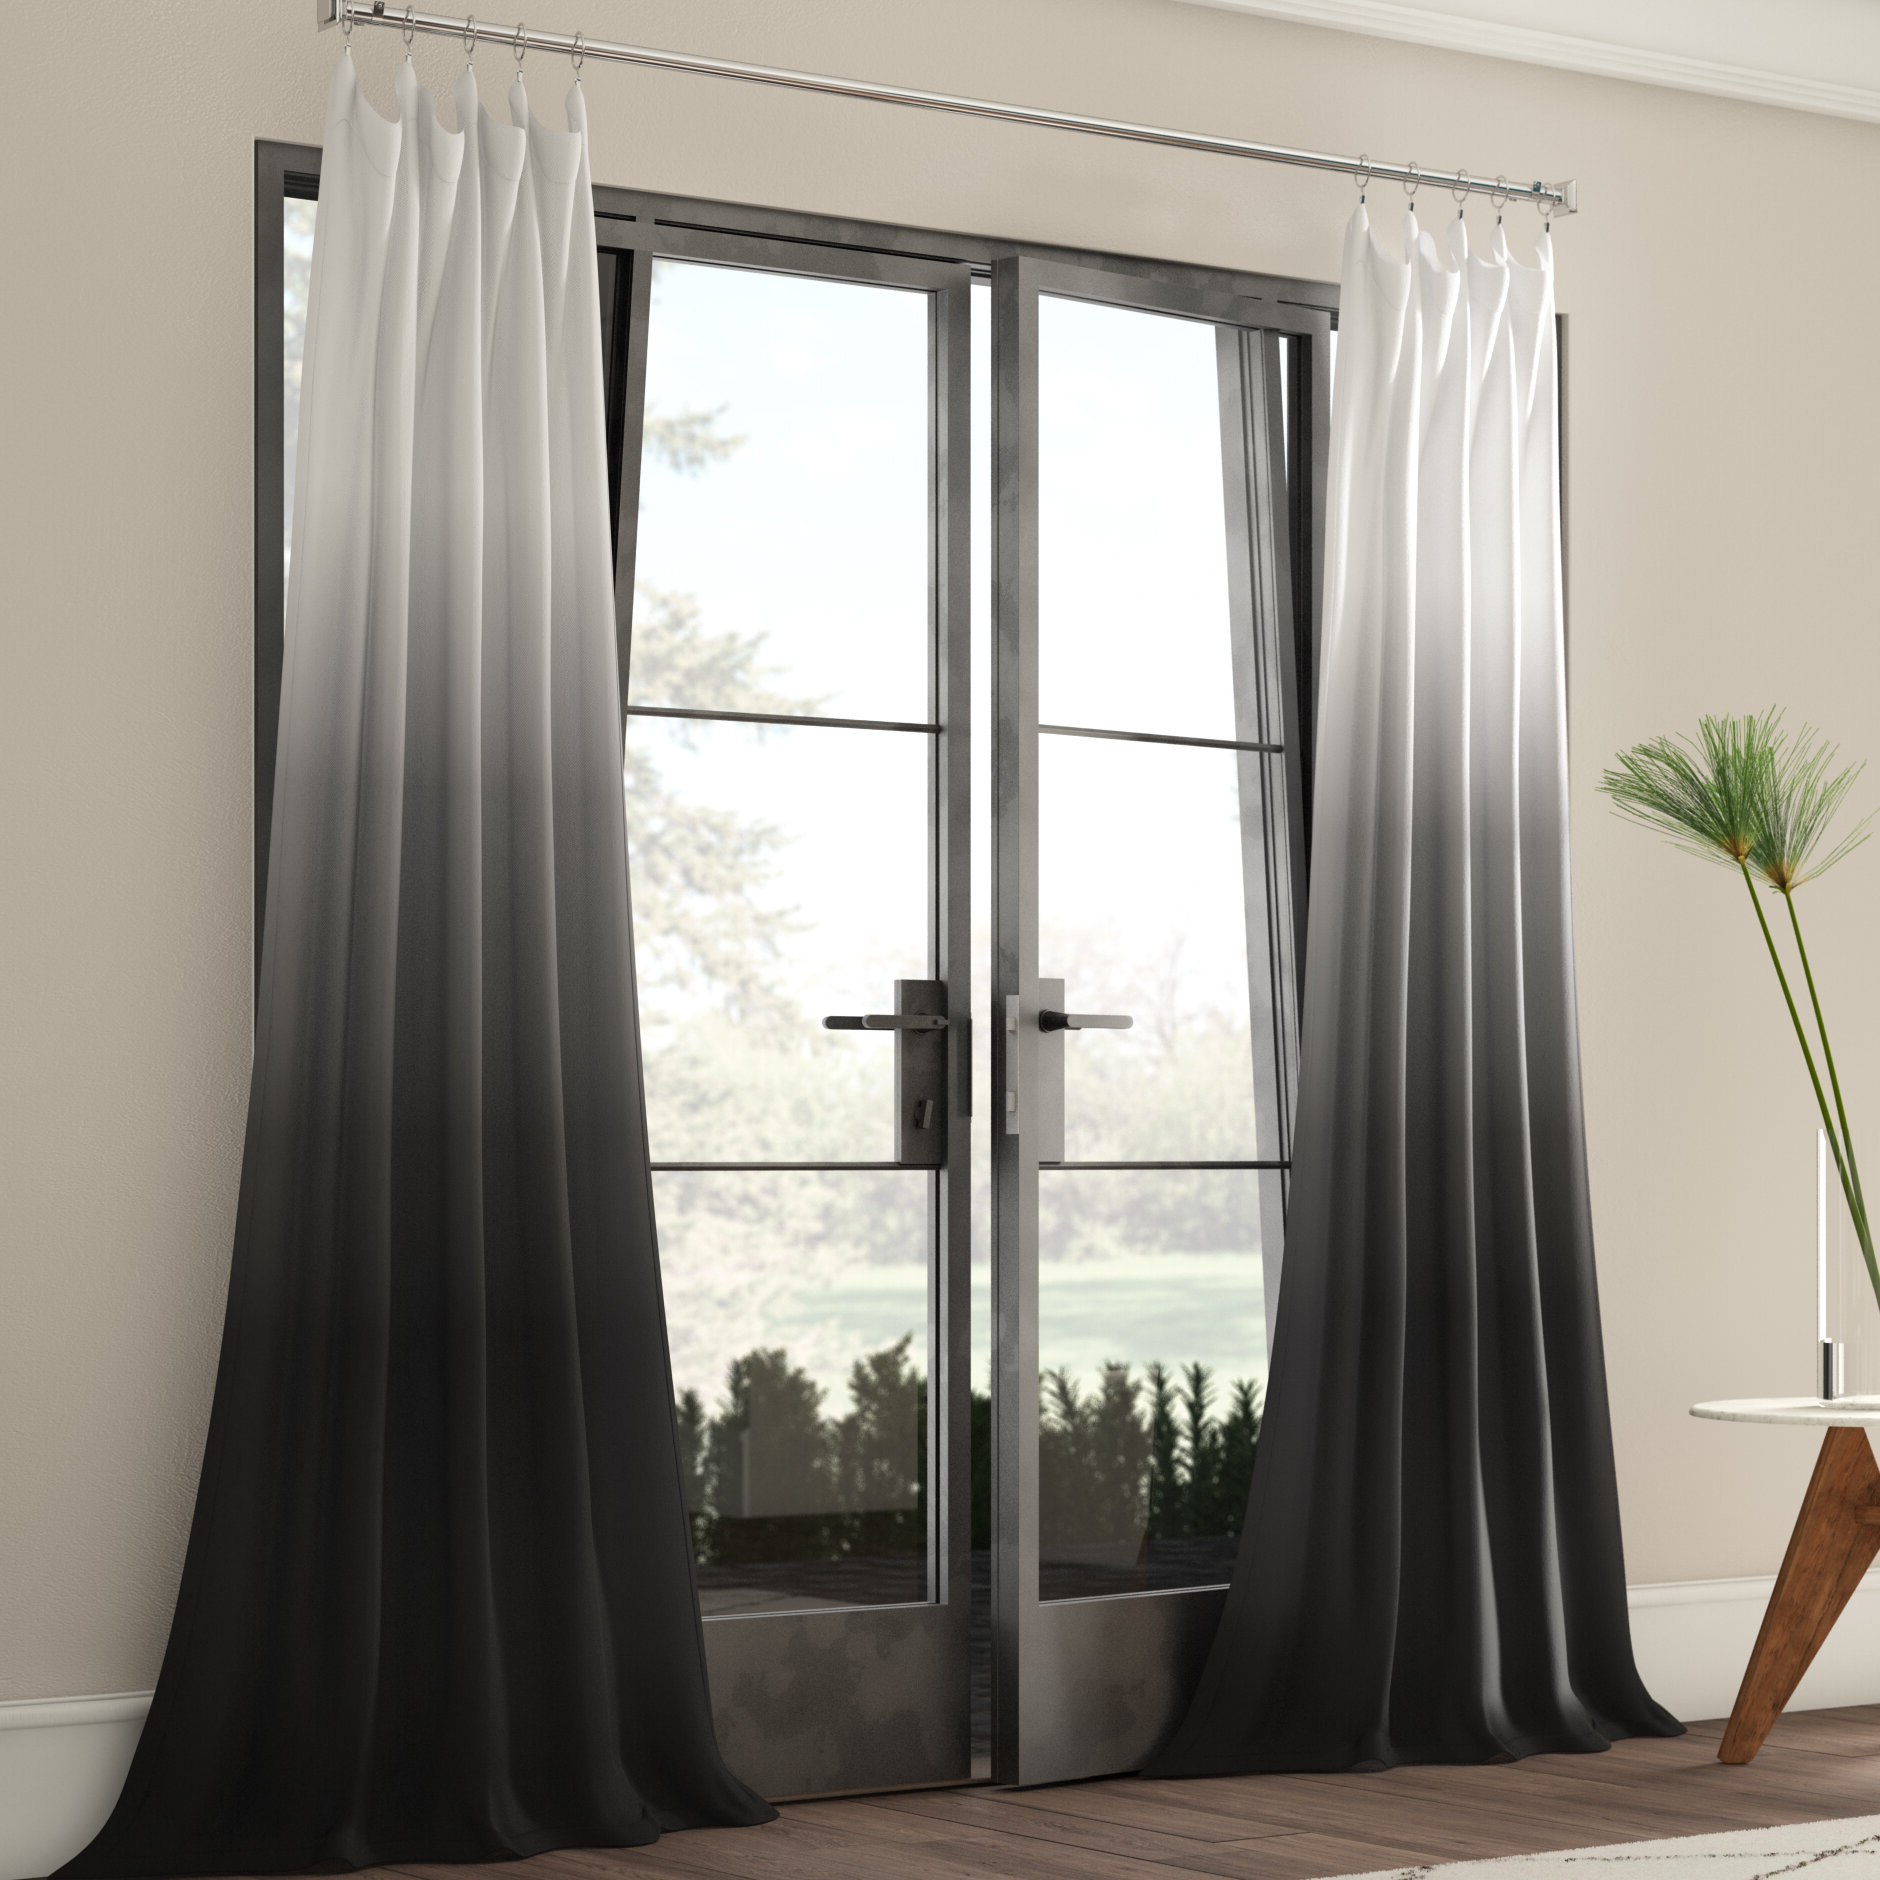 Most Recent Single Curtain Panels Intended For Winterbourne Synthetic Semi Sheer Rod Pocket Single Curtain Panel (View 5 of 20)